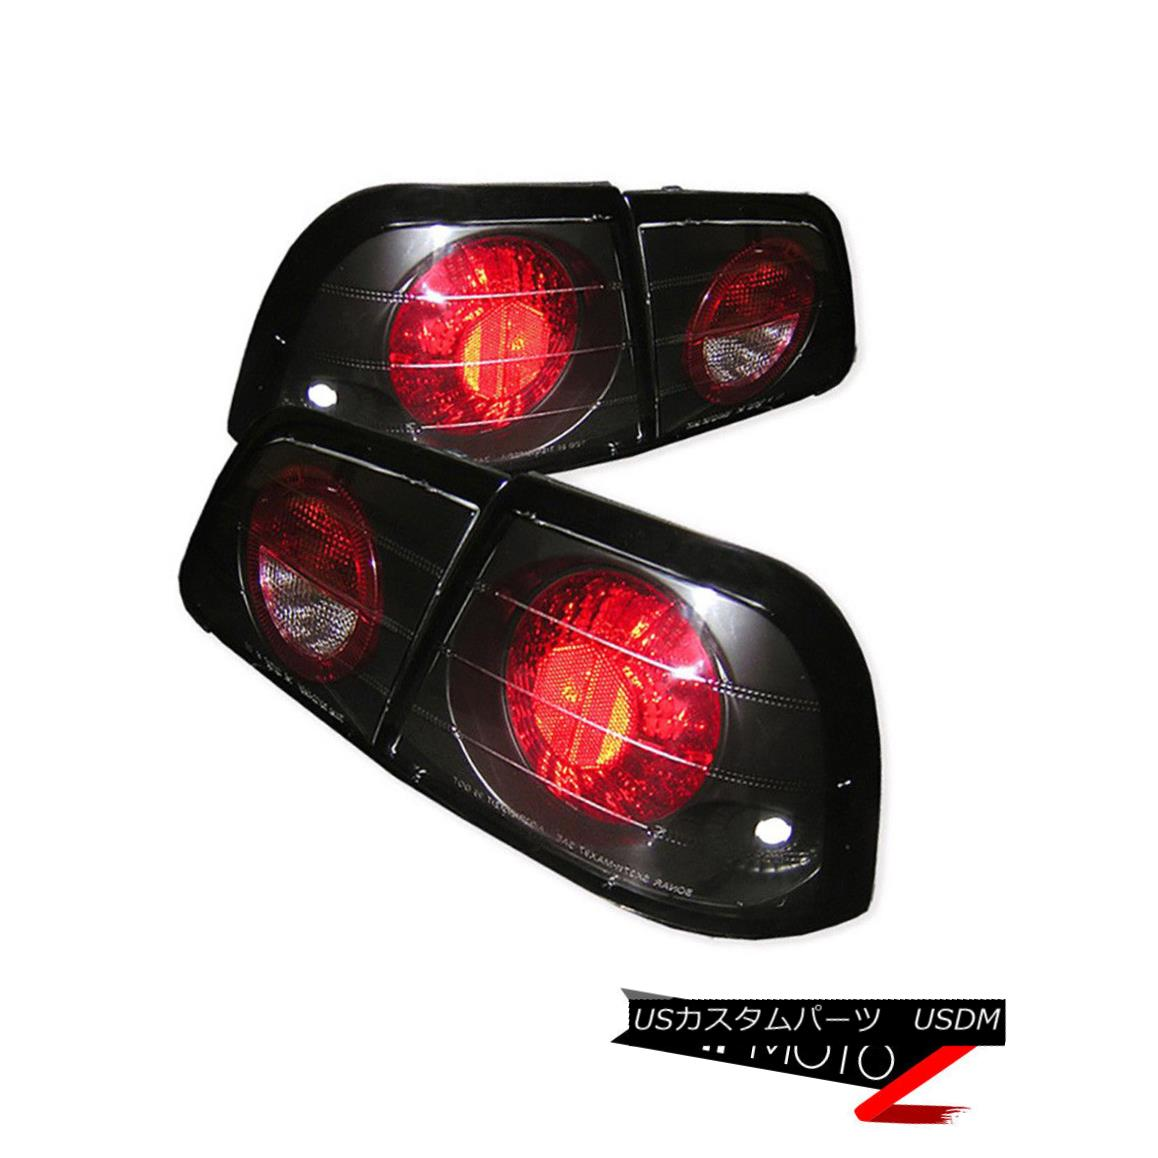 テールライト JDM Black Altezza Tail Light Signal Lamp For 97-99 Maxima V6 A32 VQ30 SE 97-99 Maxima V6 A32 VQ30 SE用JDM Black Altezzaテールライト信号ランプ